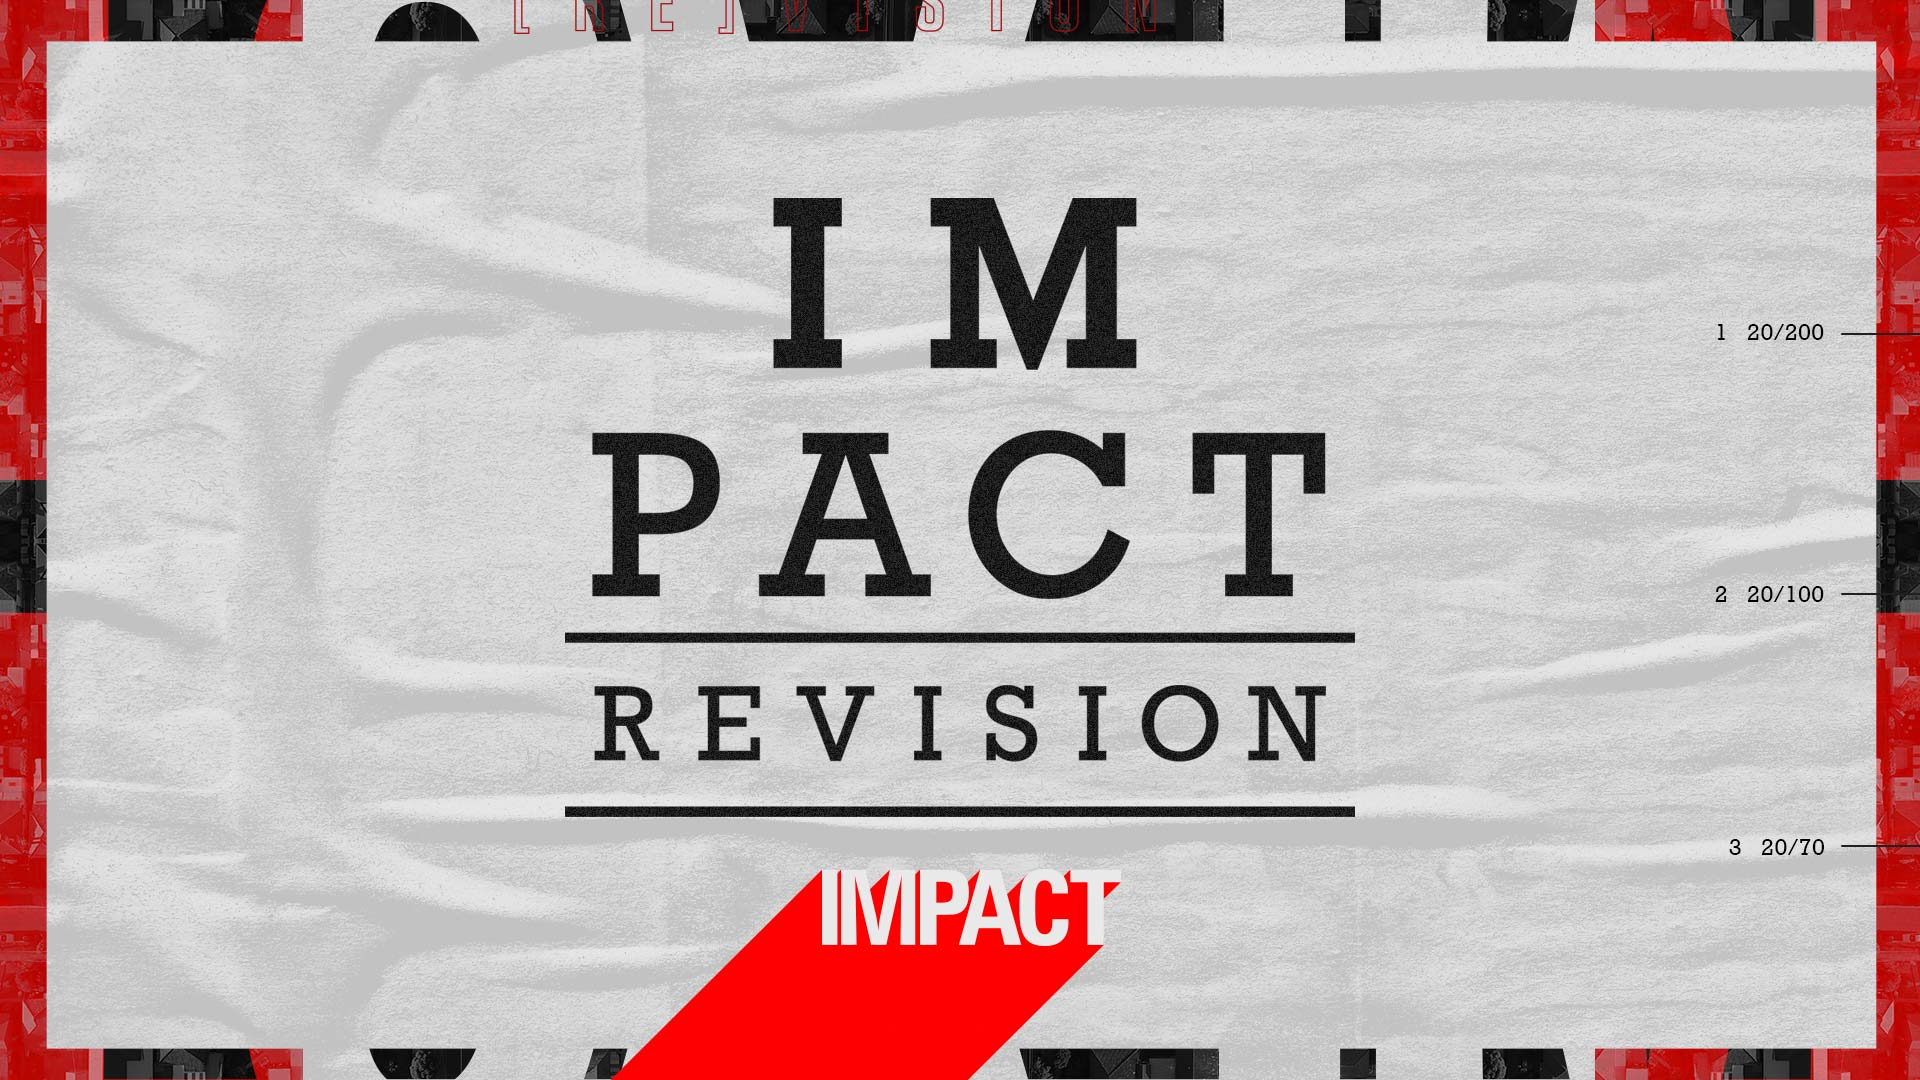 IMPACT REVISION